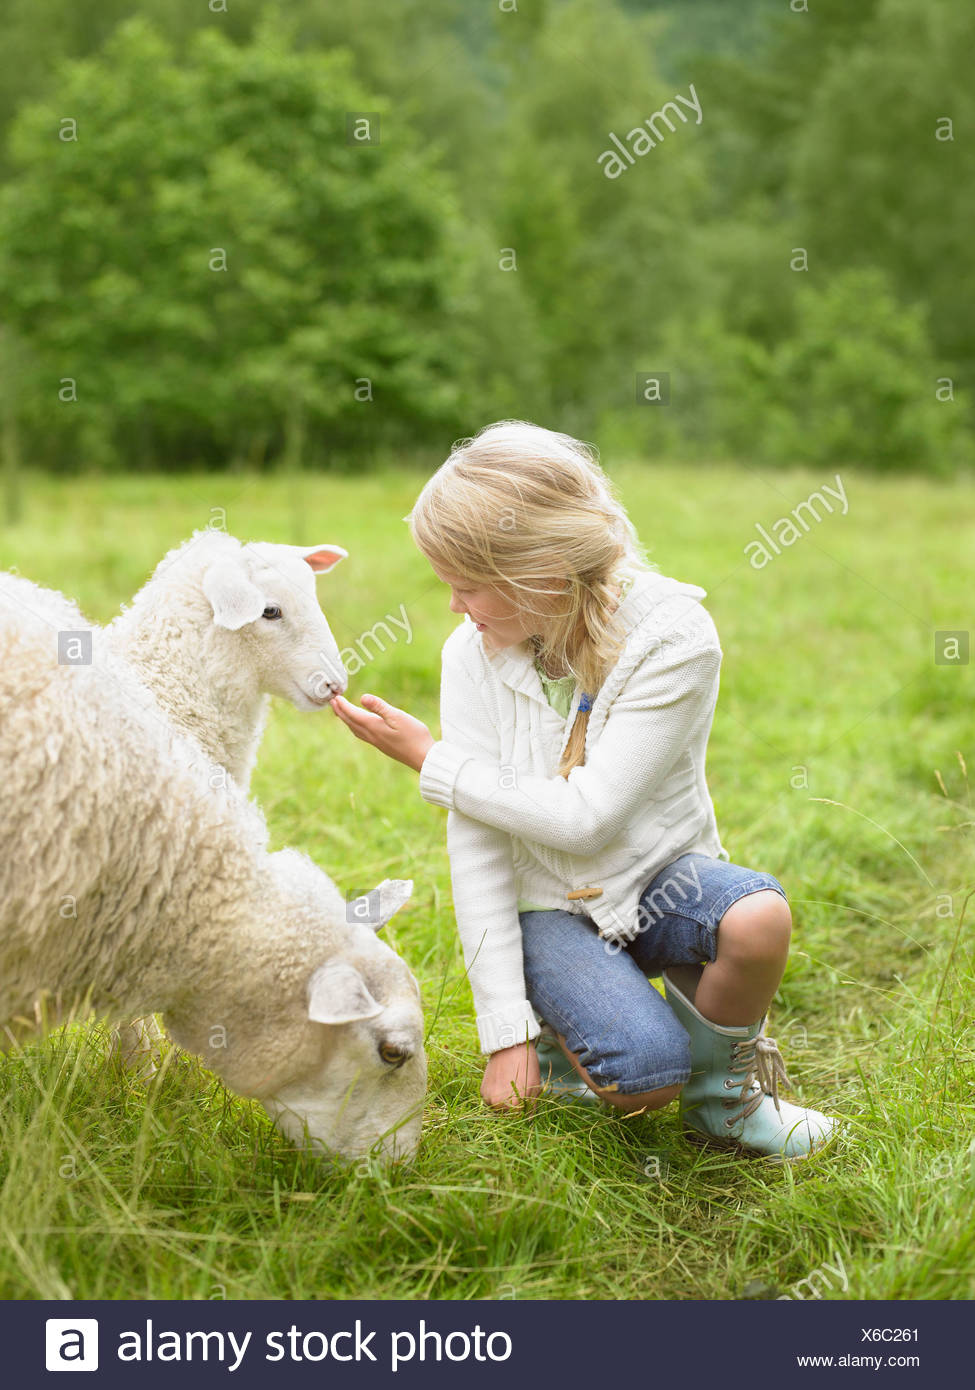 Young girl smiling and crouching by lamb in a field. - Stock Image